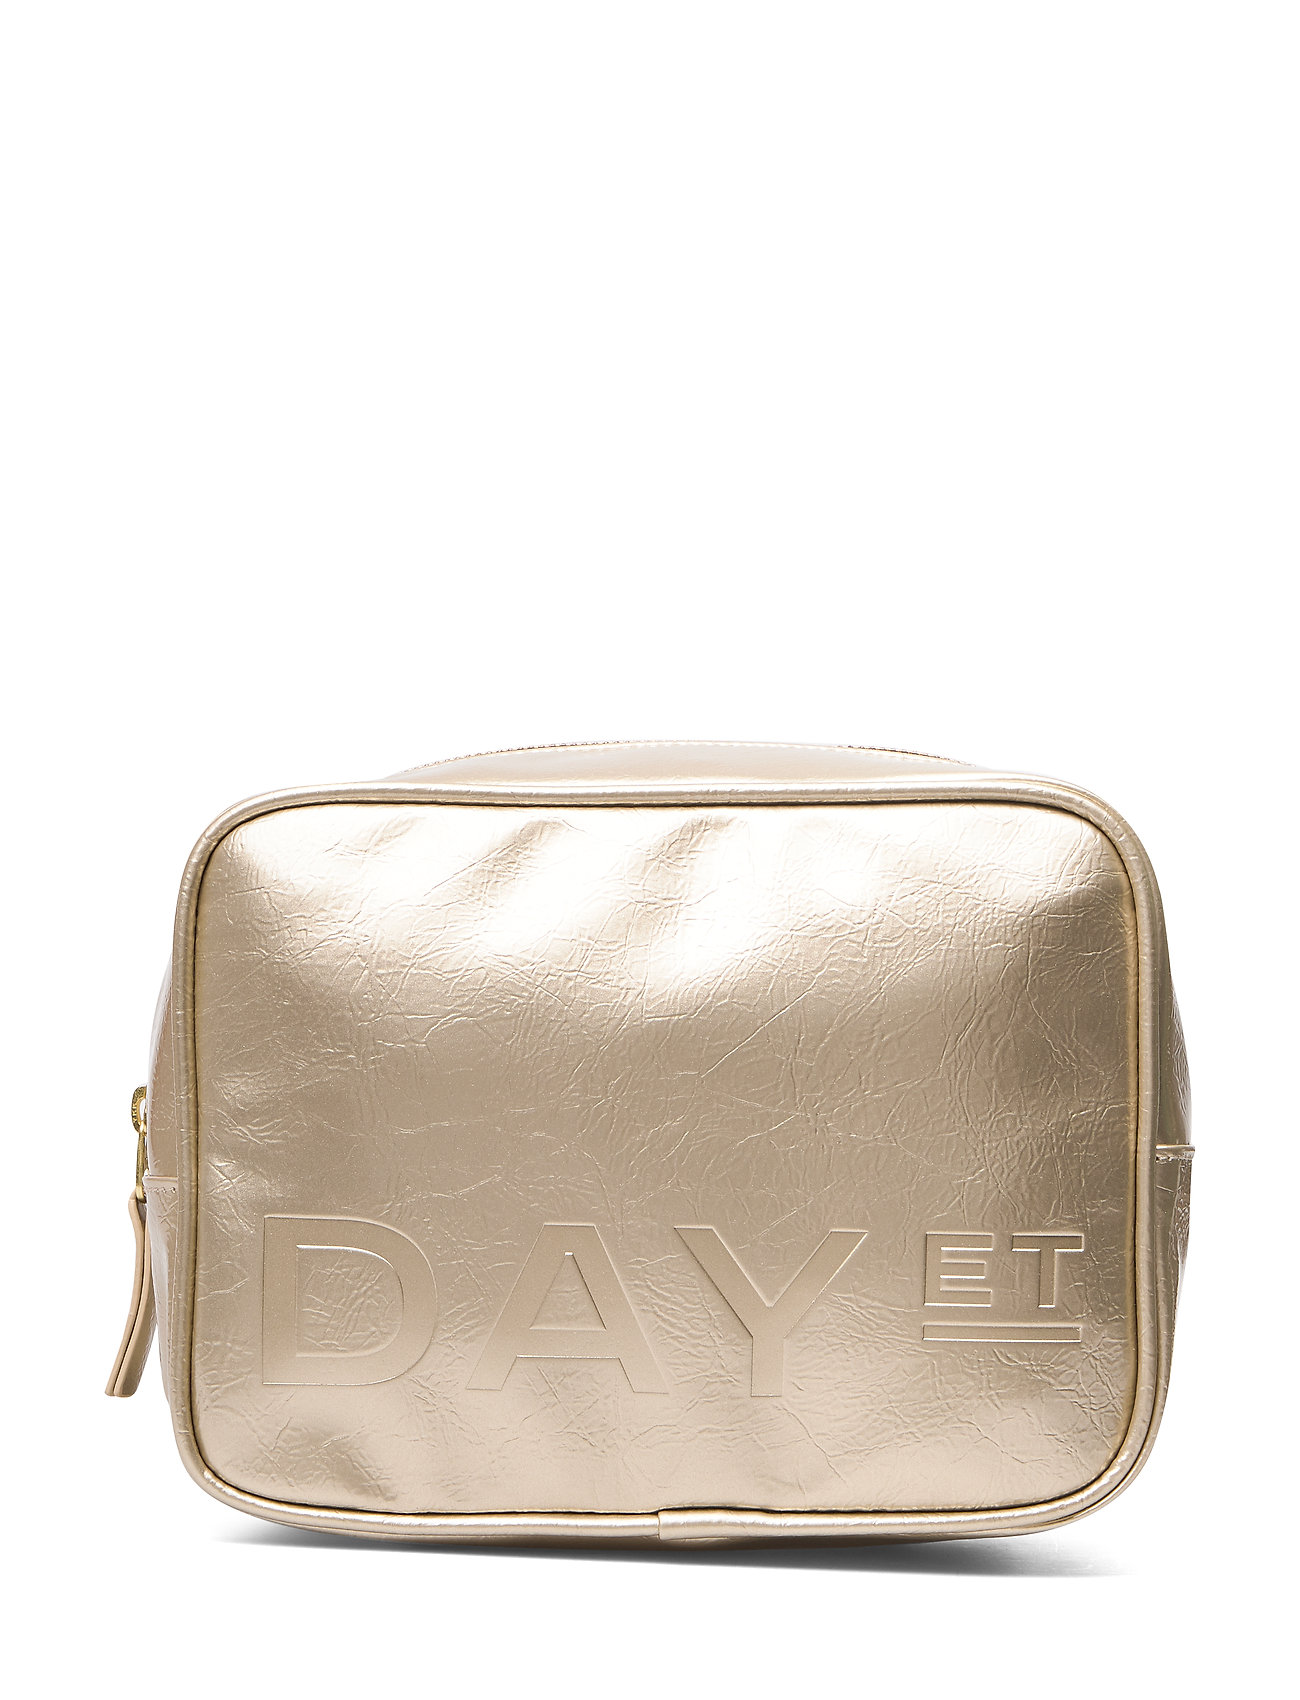 DAY et Day Patent N Beauty - CREAM GOLD